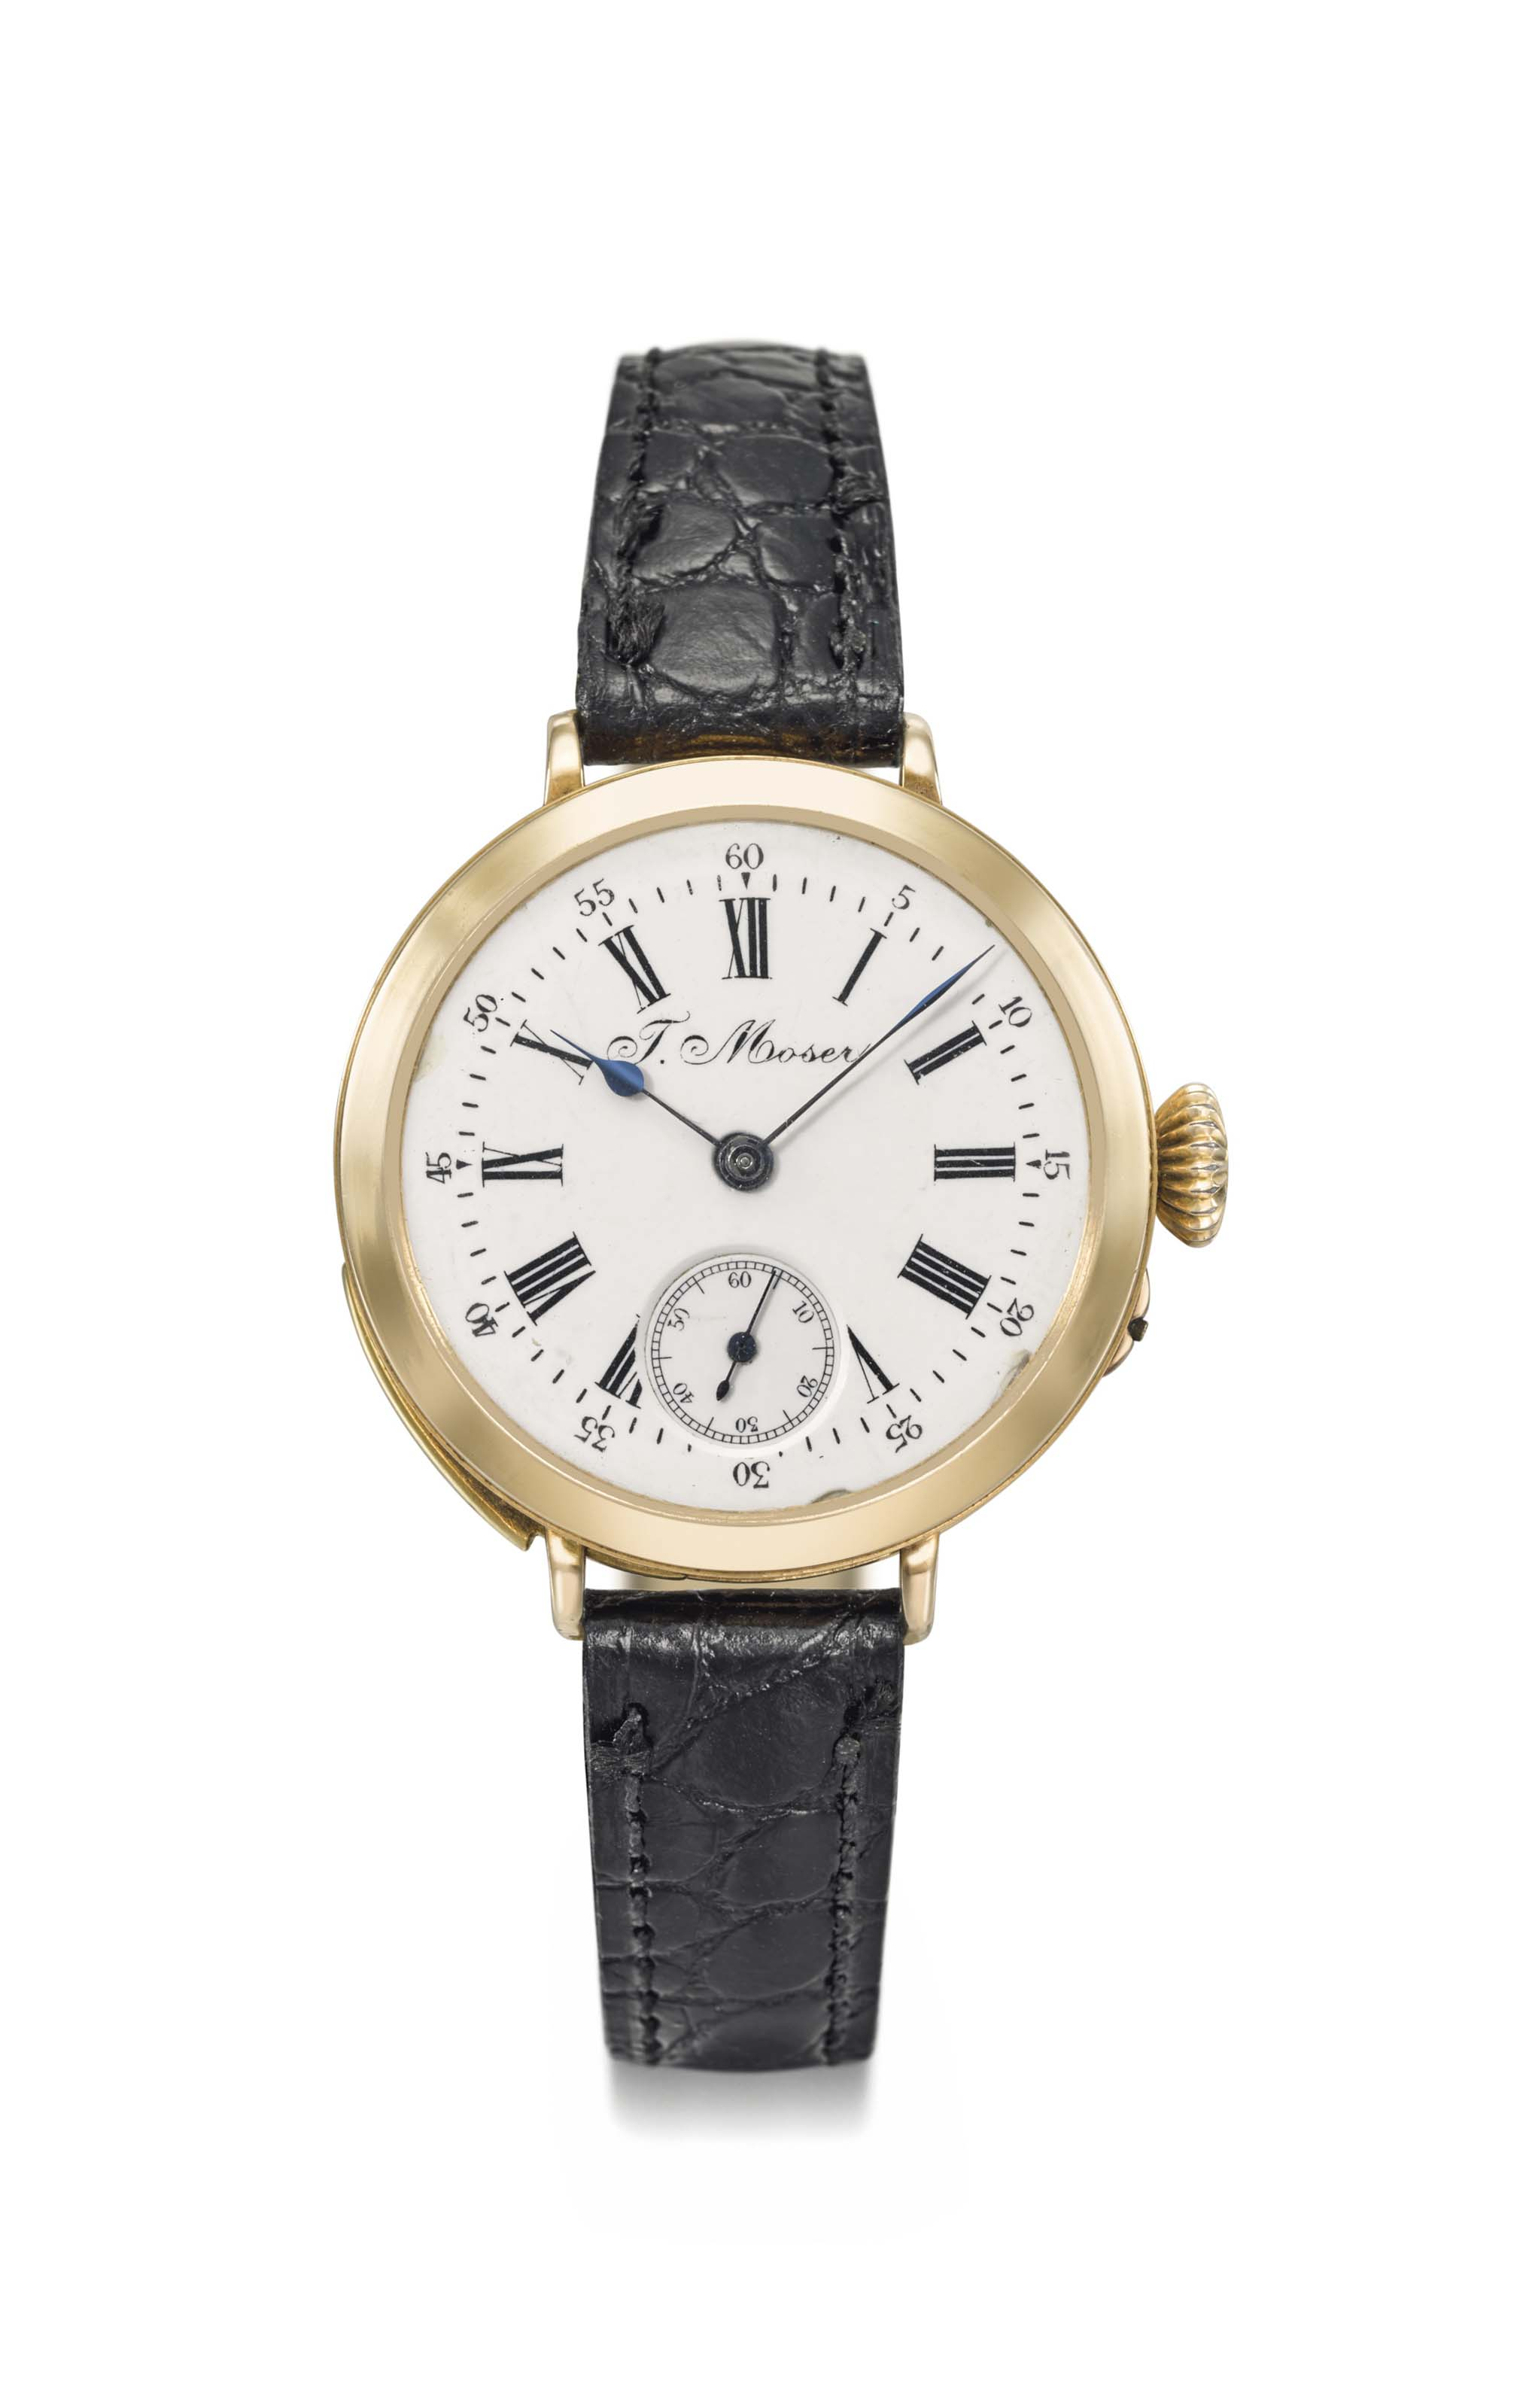 Moser. A fine and rare 18K pink gold minute repeating converted wristwatch, made for the Russian market